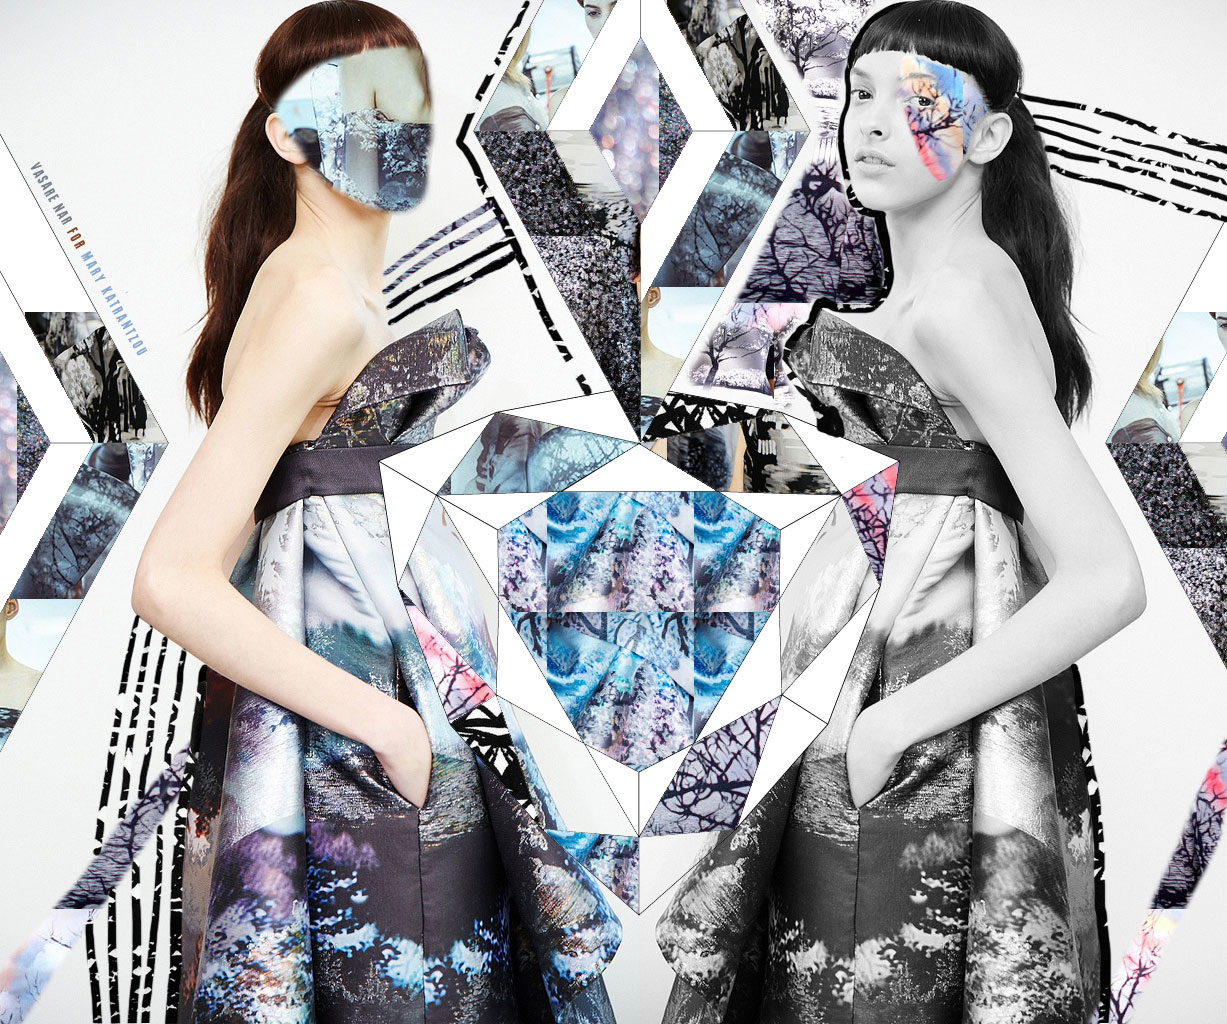 Mary katrantzou aw13 collage vasare nar art fashion for Nyu tisch fashion design